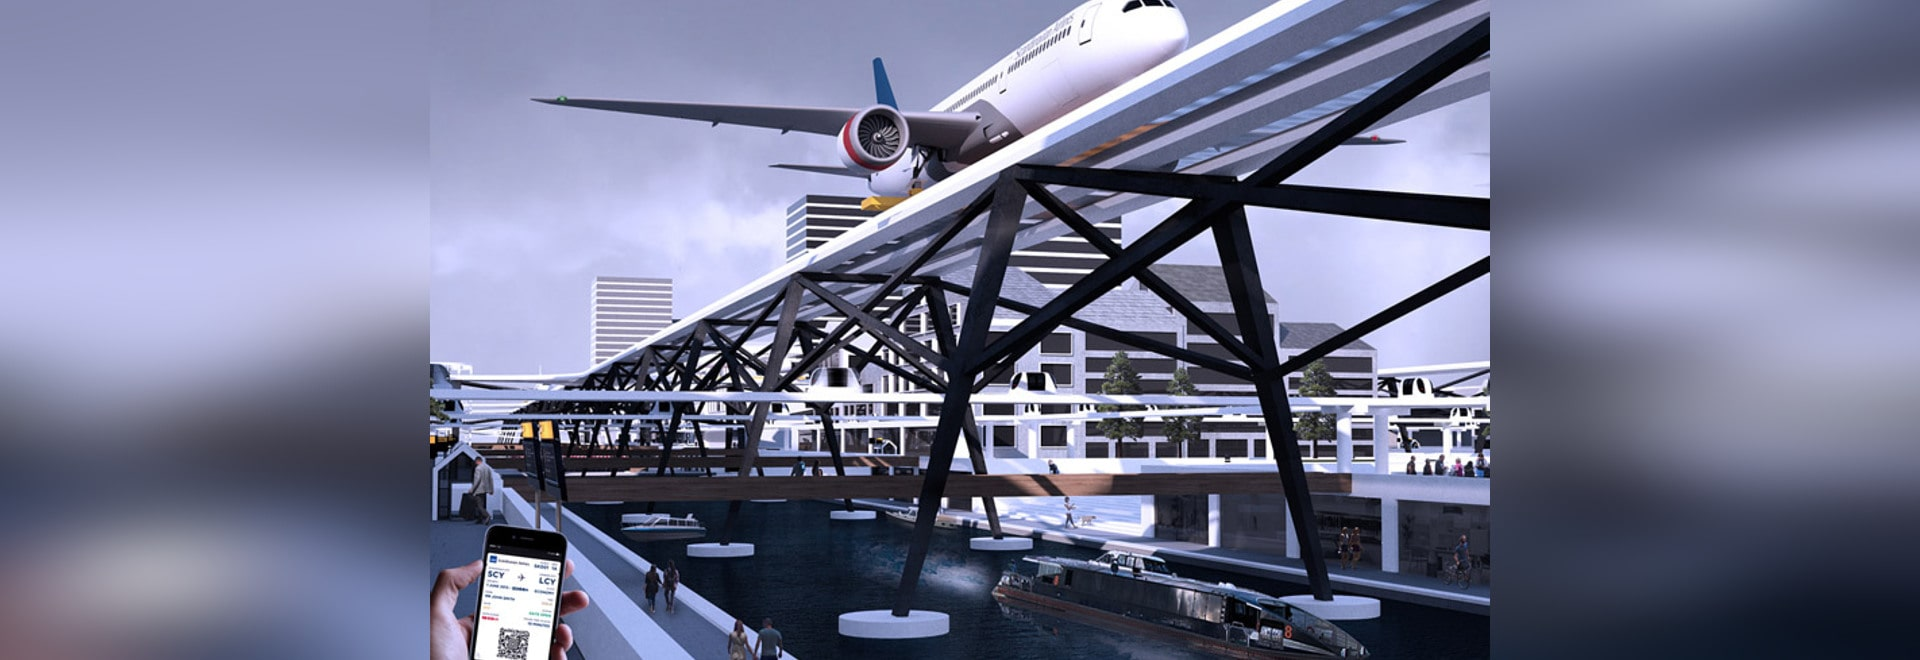 Ever wish airports could be closer to the city center? Alex Sutton's futuristic vision of air travel could shorten your airport commute significantly by elevating plane runways above city streets. ...